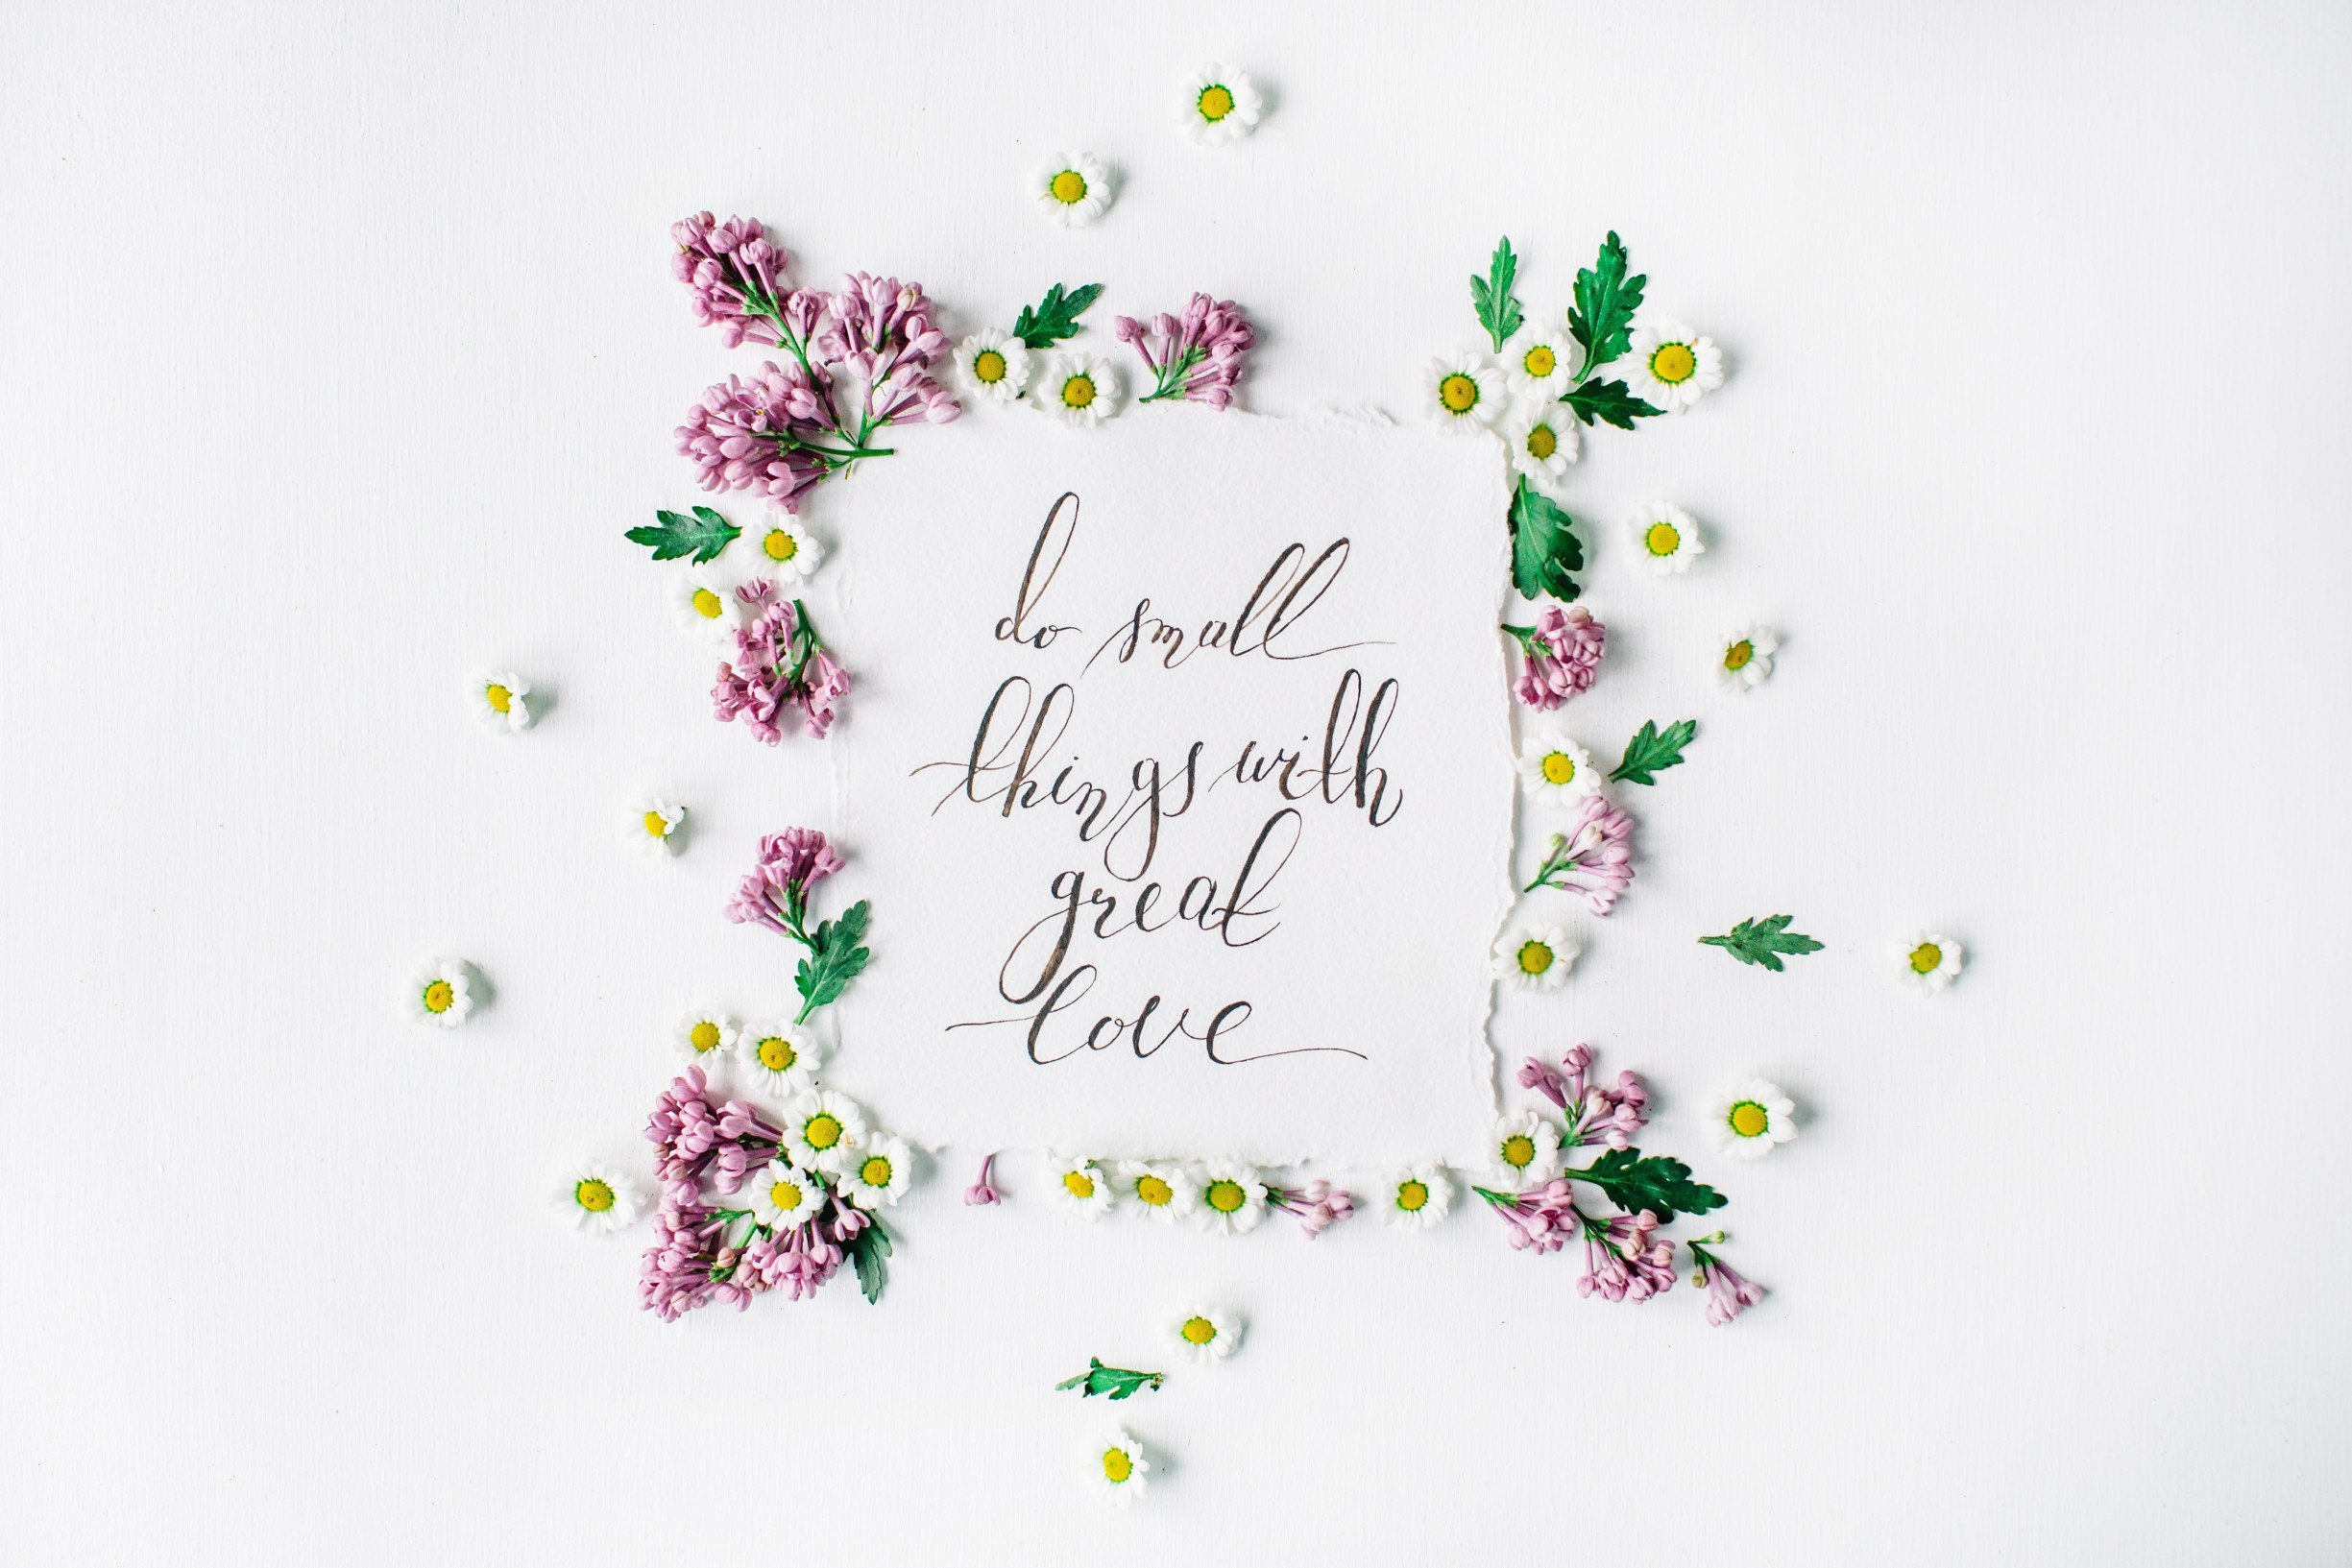 flowers leaves hand-written notes